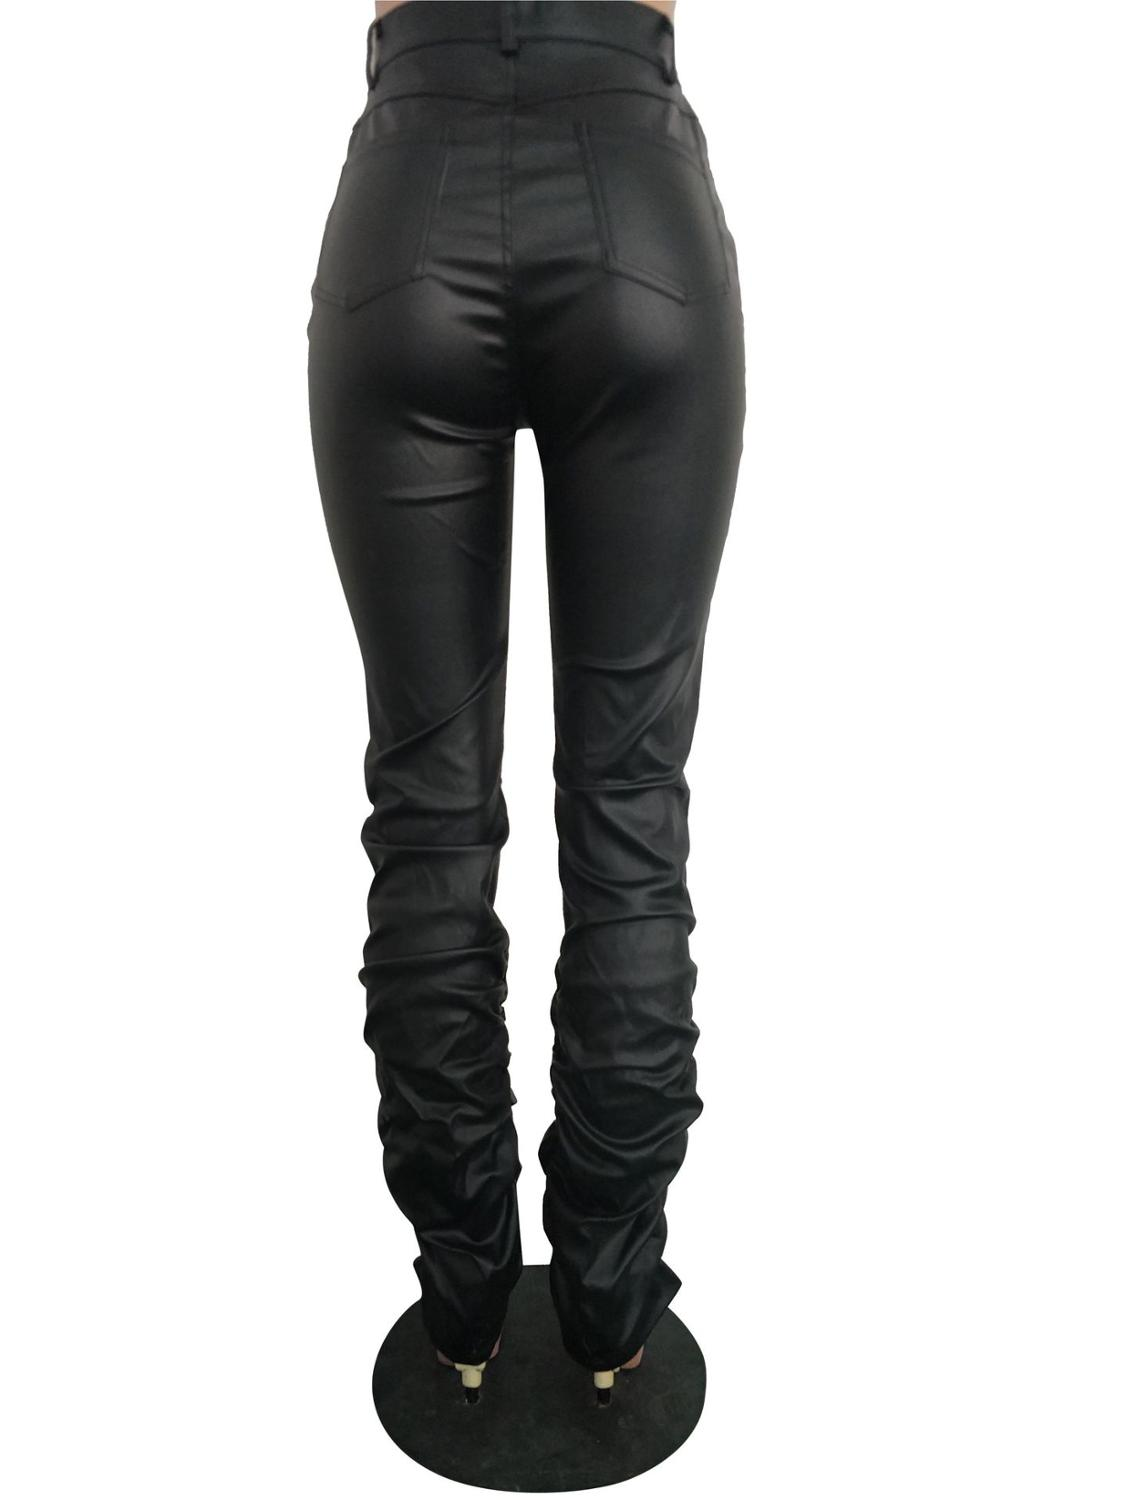 Adogirl Ruched PU Leather Pants Highly Stretchy Women Fashion Skinny Trousers Pants & Capris Women Bottom ! Plus Size Women's Clothing & Accessories